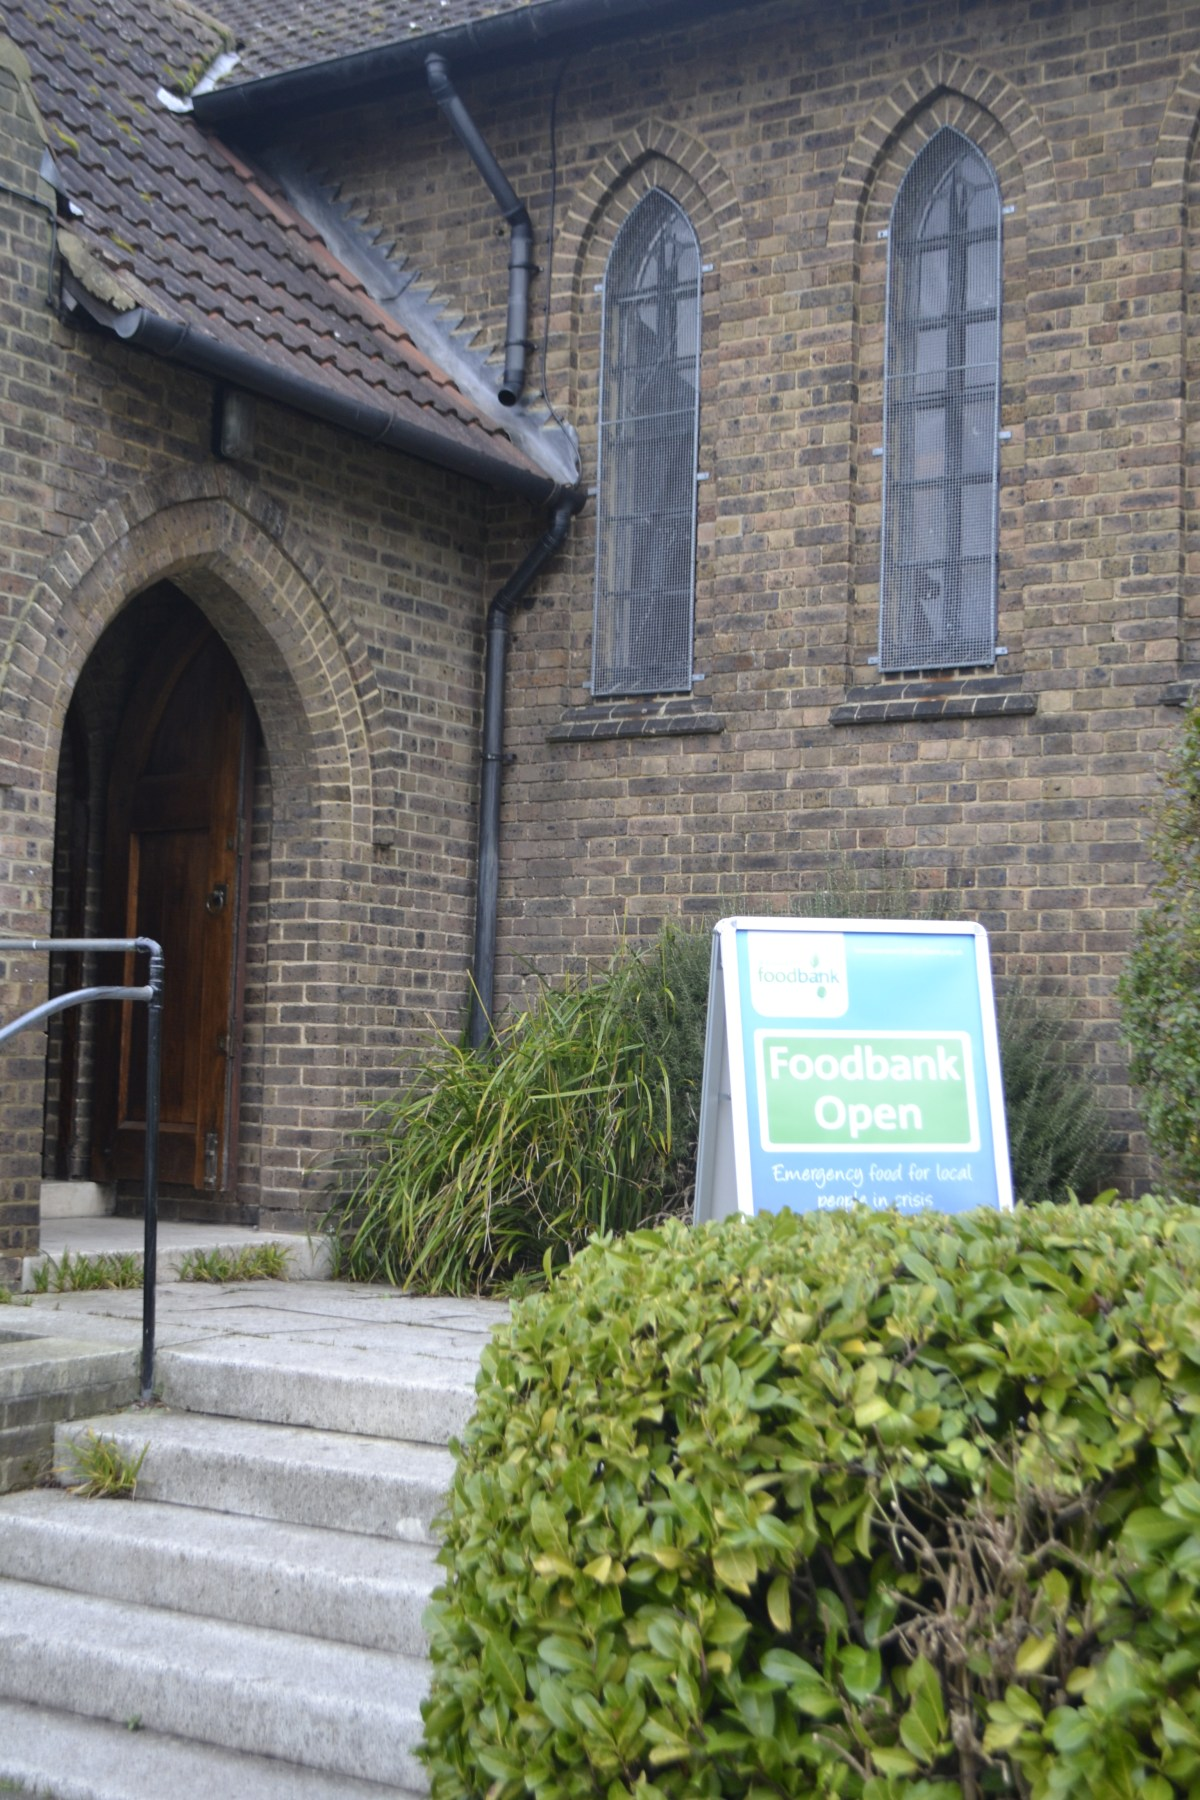 5,218 emergency food parcels given out by Wandsworth Foodbank last year, up 11%